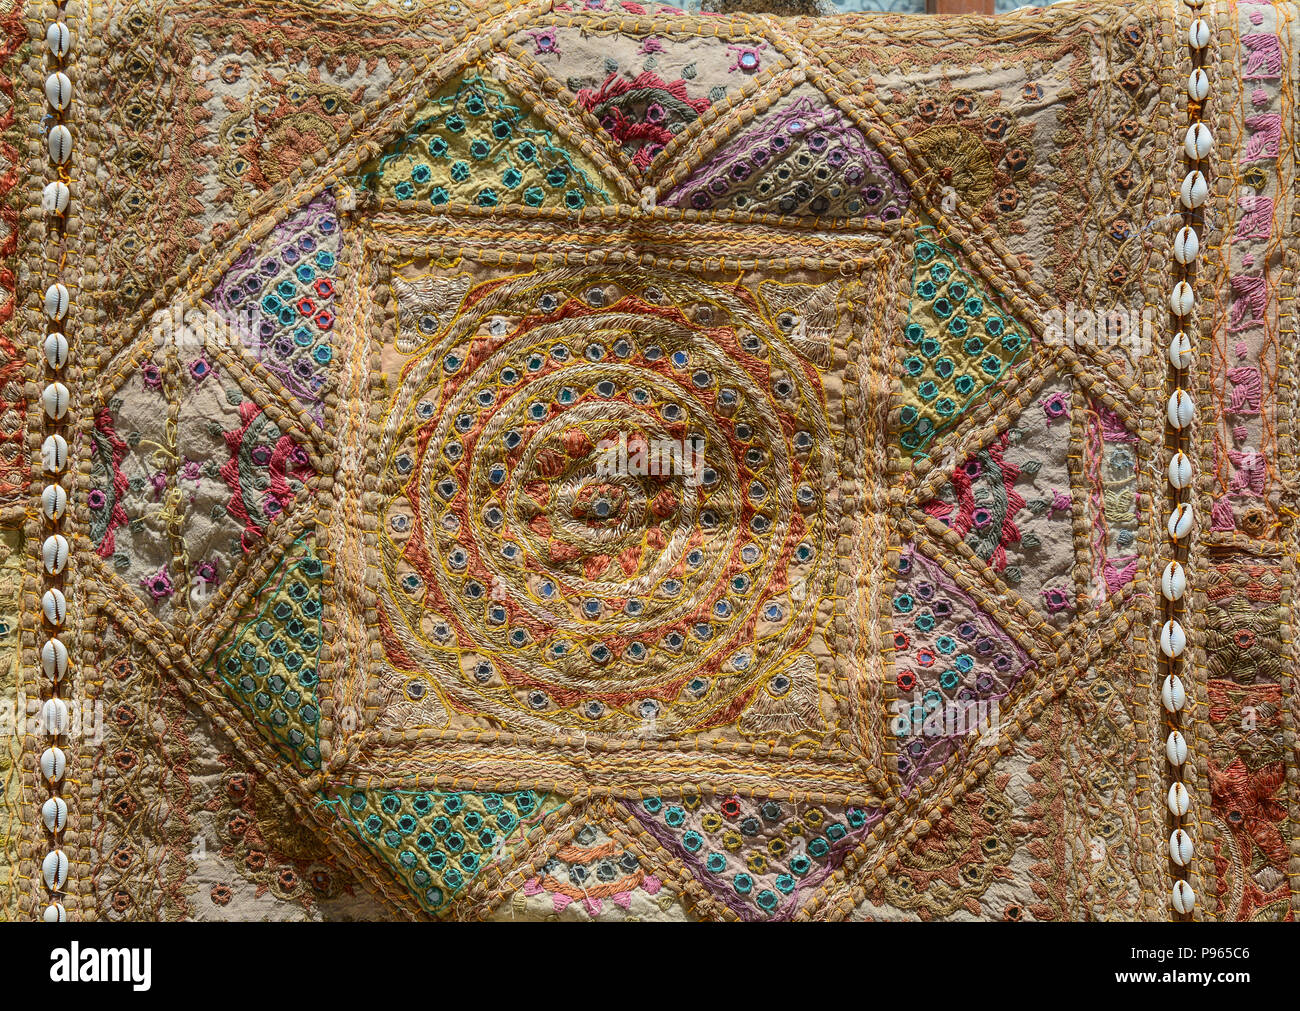 Precious ancient carpet for sale at street market in Leh, India. - Stock Image